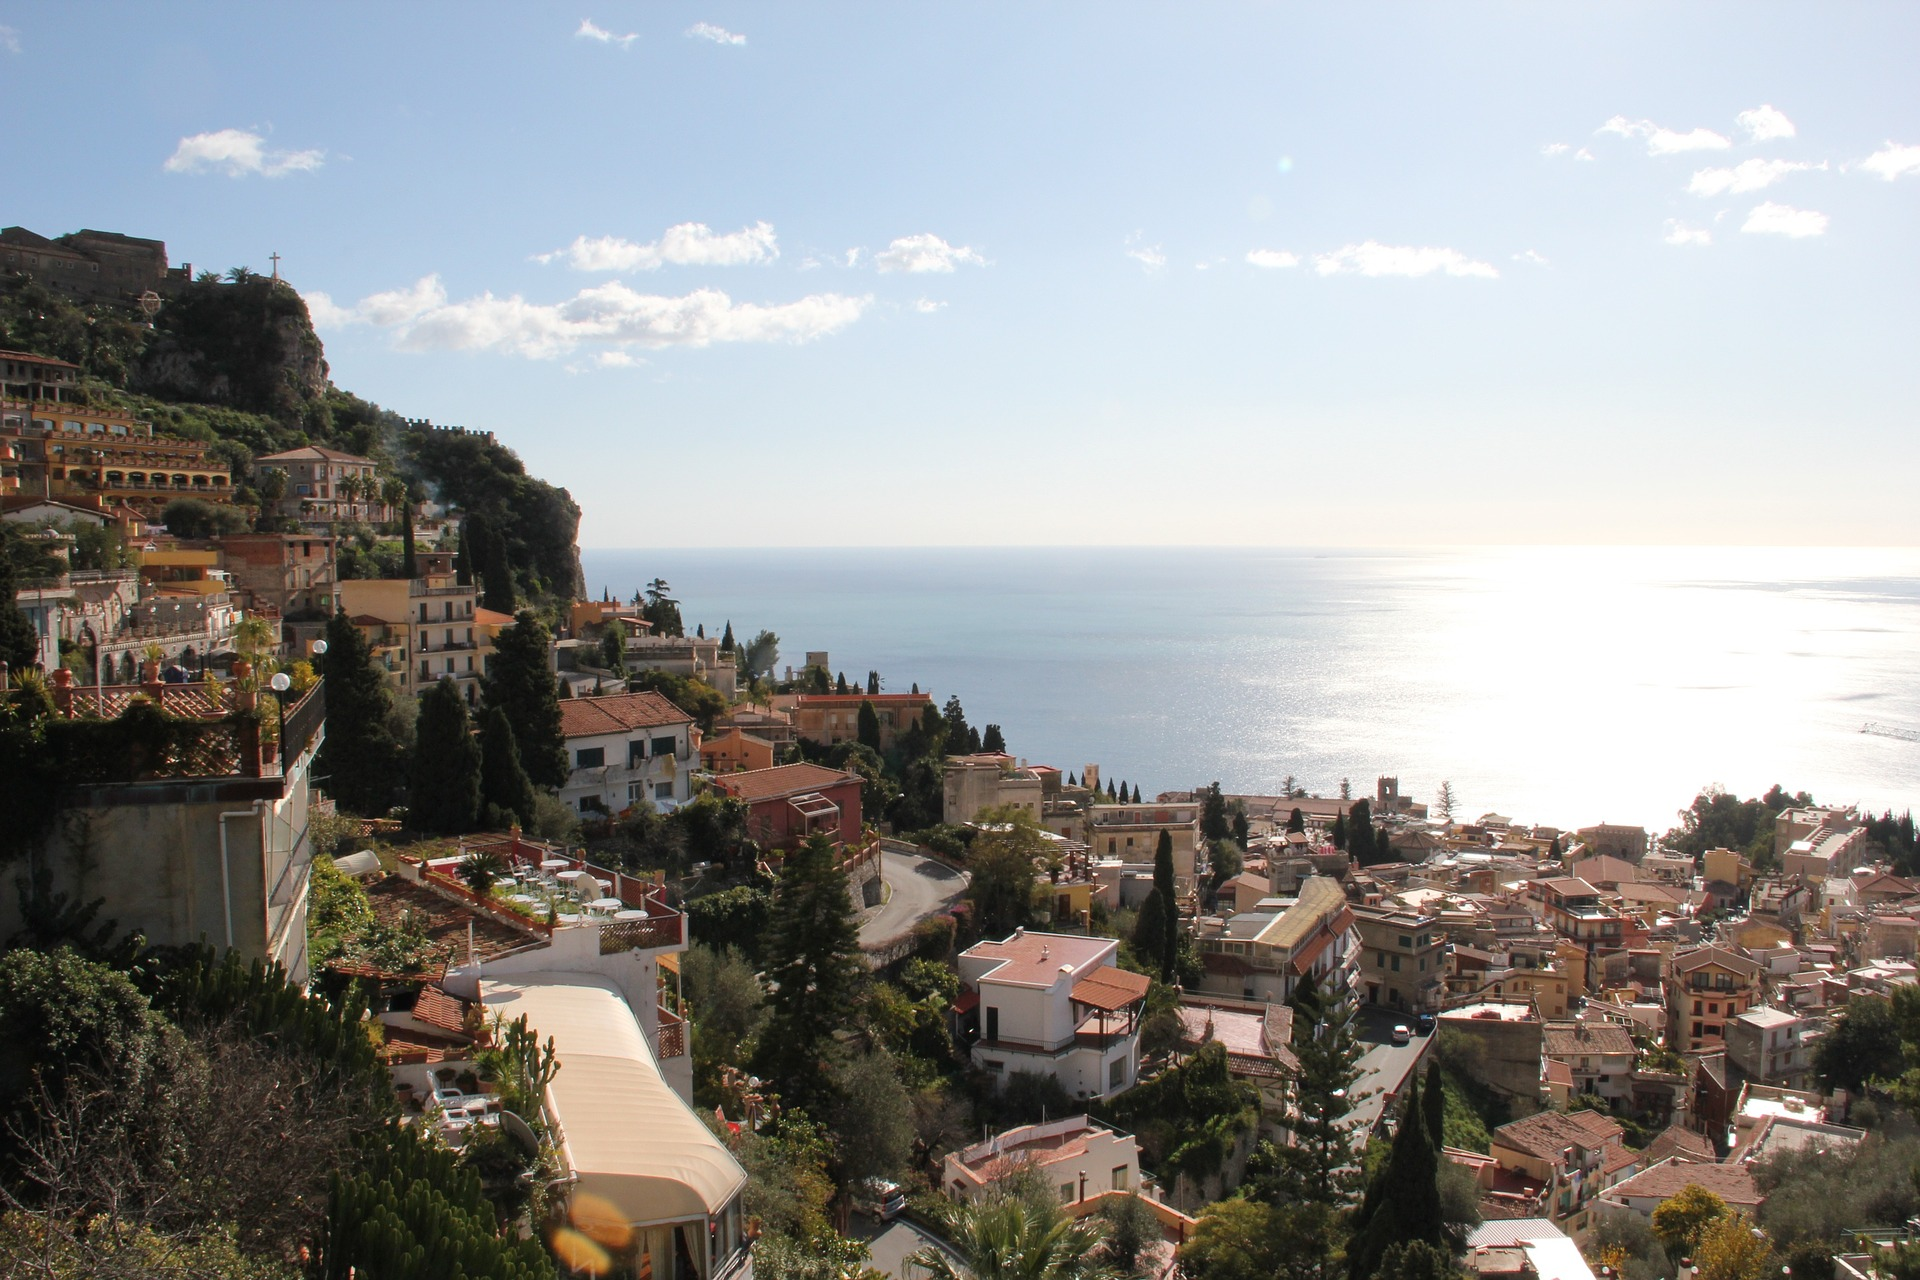 Hillside town of Taormina in Sicily, Italy